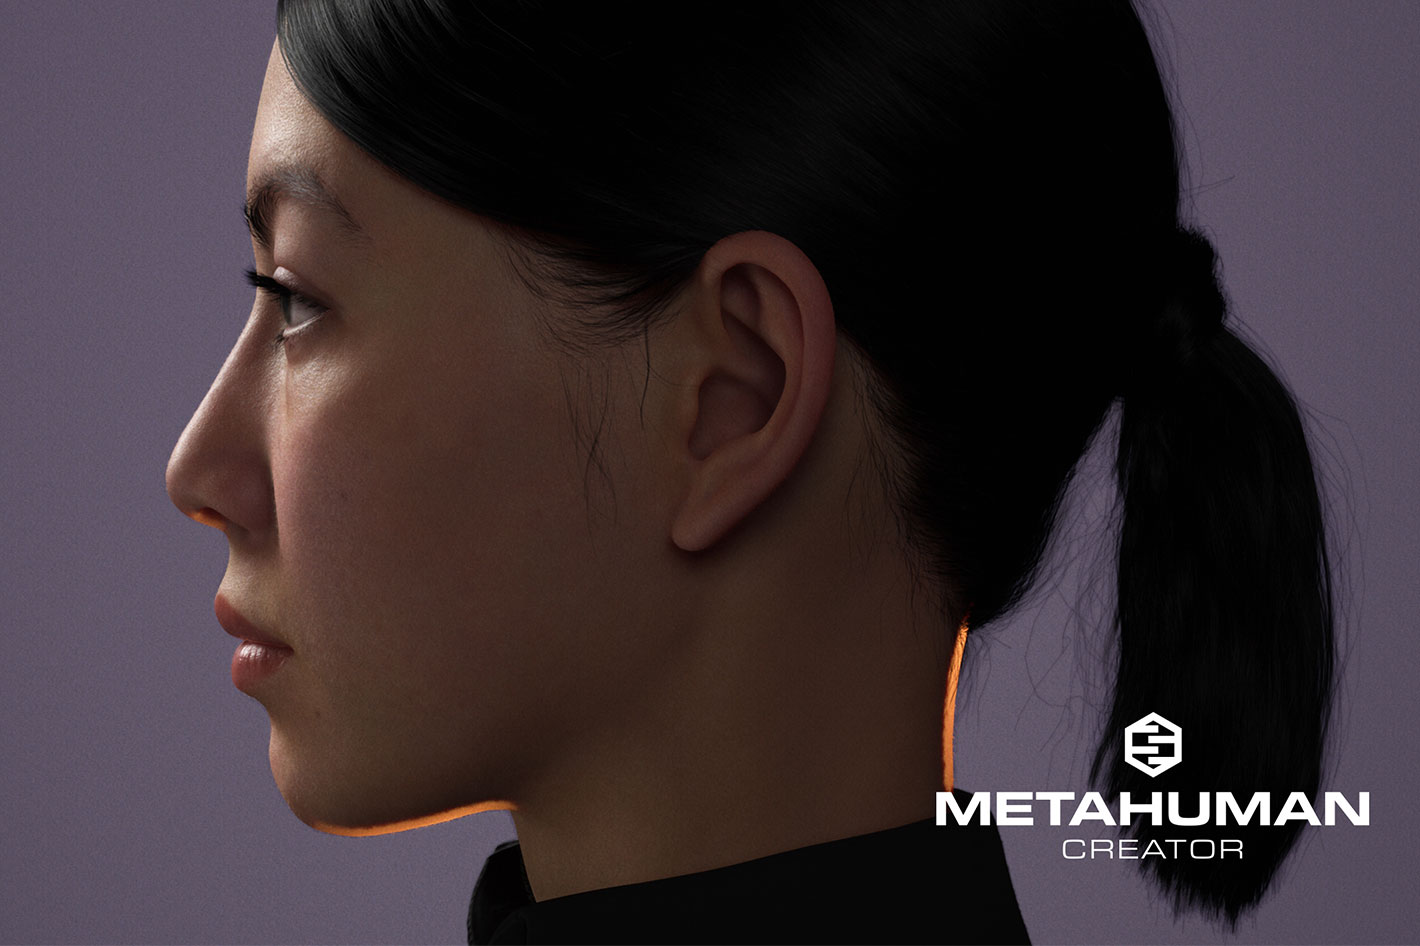 MetaHuman Creator: Early Access is now available!